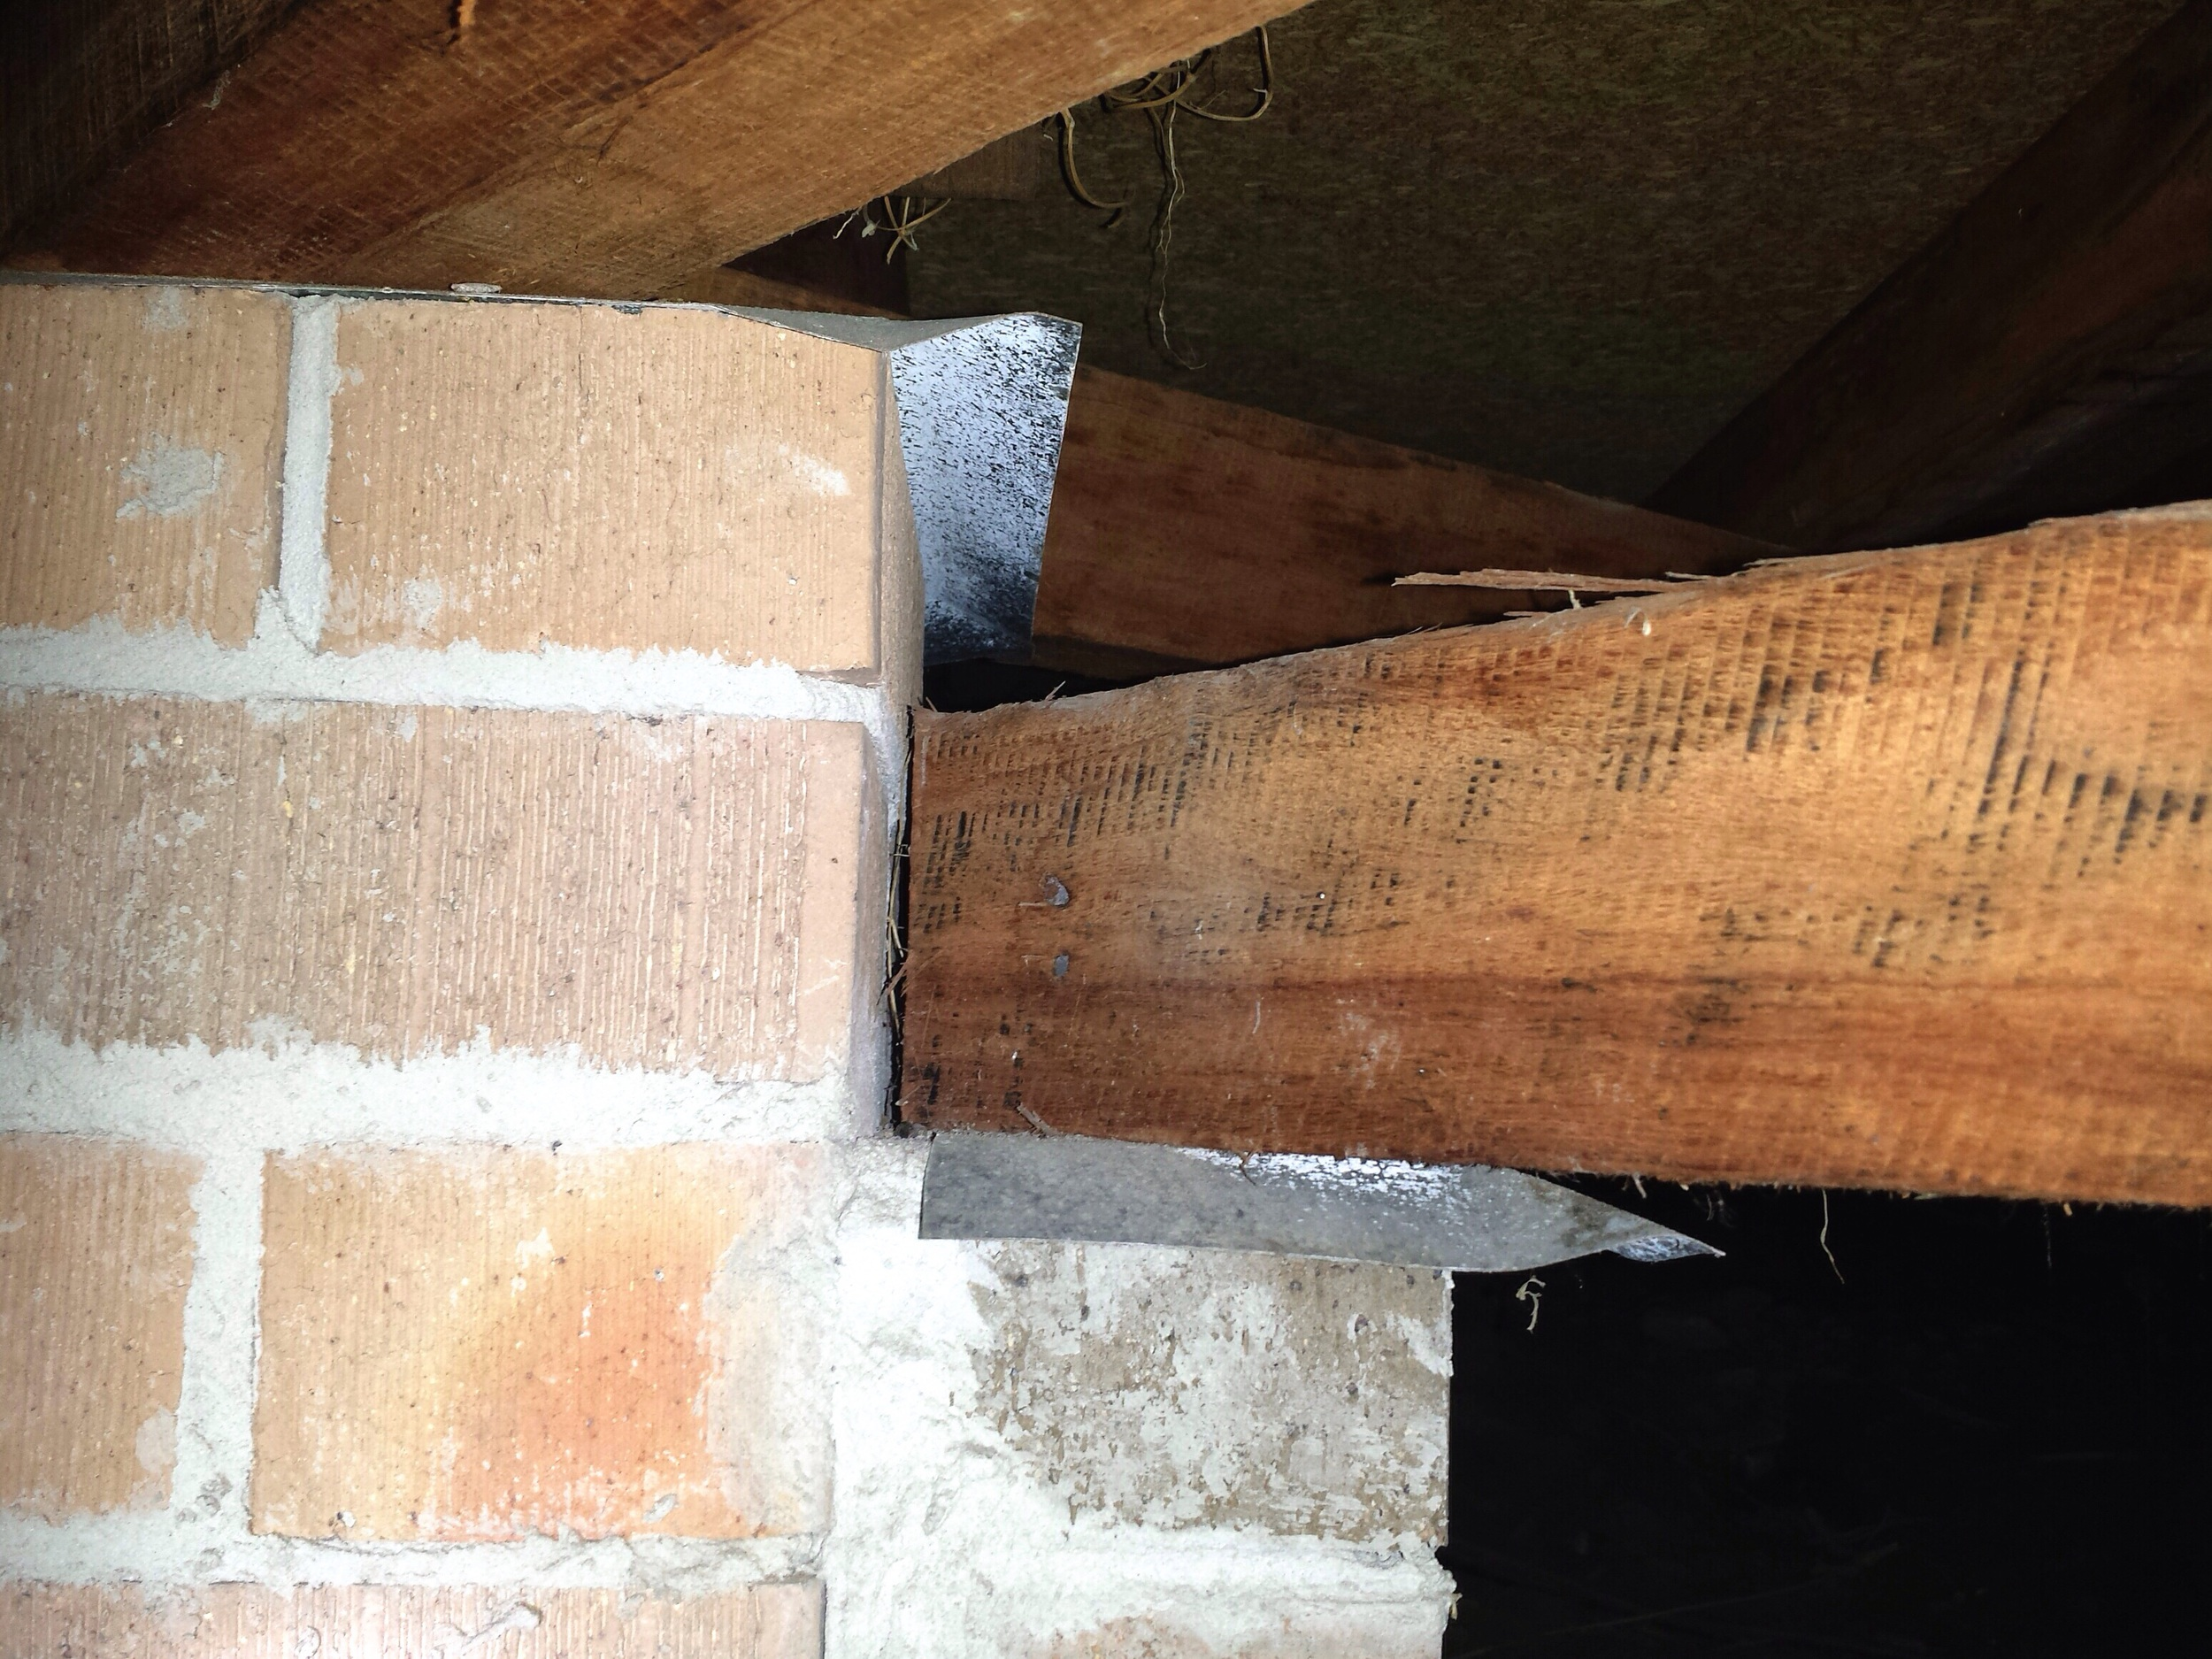 This is the most common failing of ant capping, failing to form a continuous barrier when there is a vertical transition, nothing is preventing the termites coming up between the two piers and into the lower bearer, and it would not be visible until it's too late.